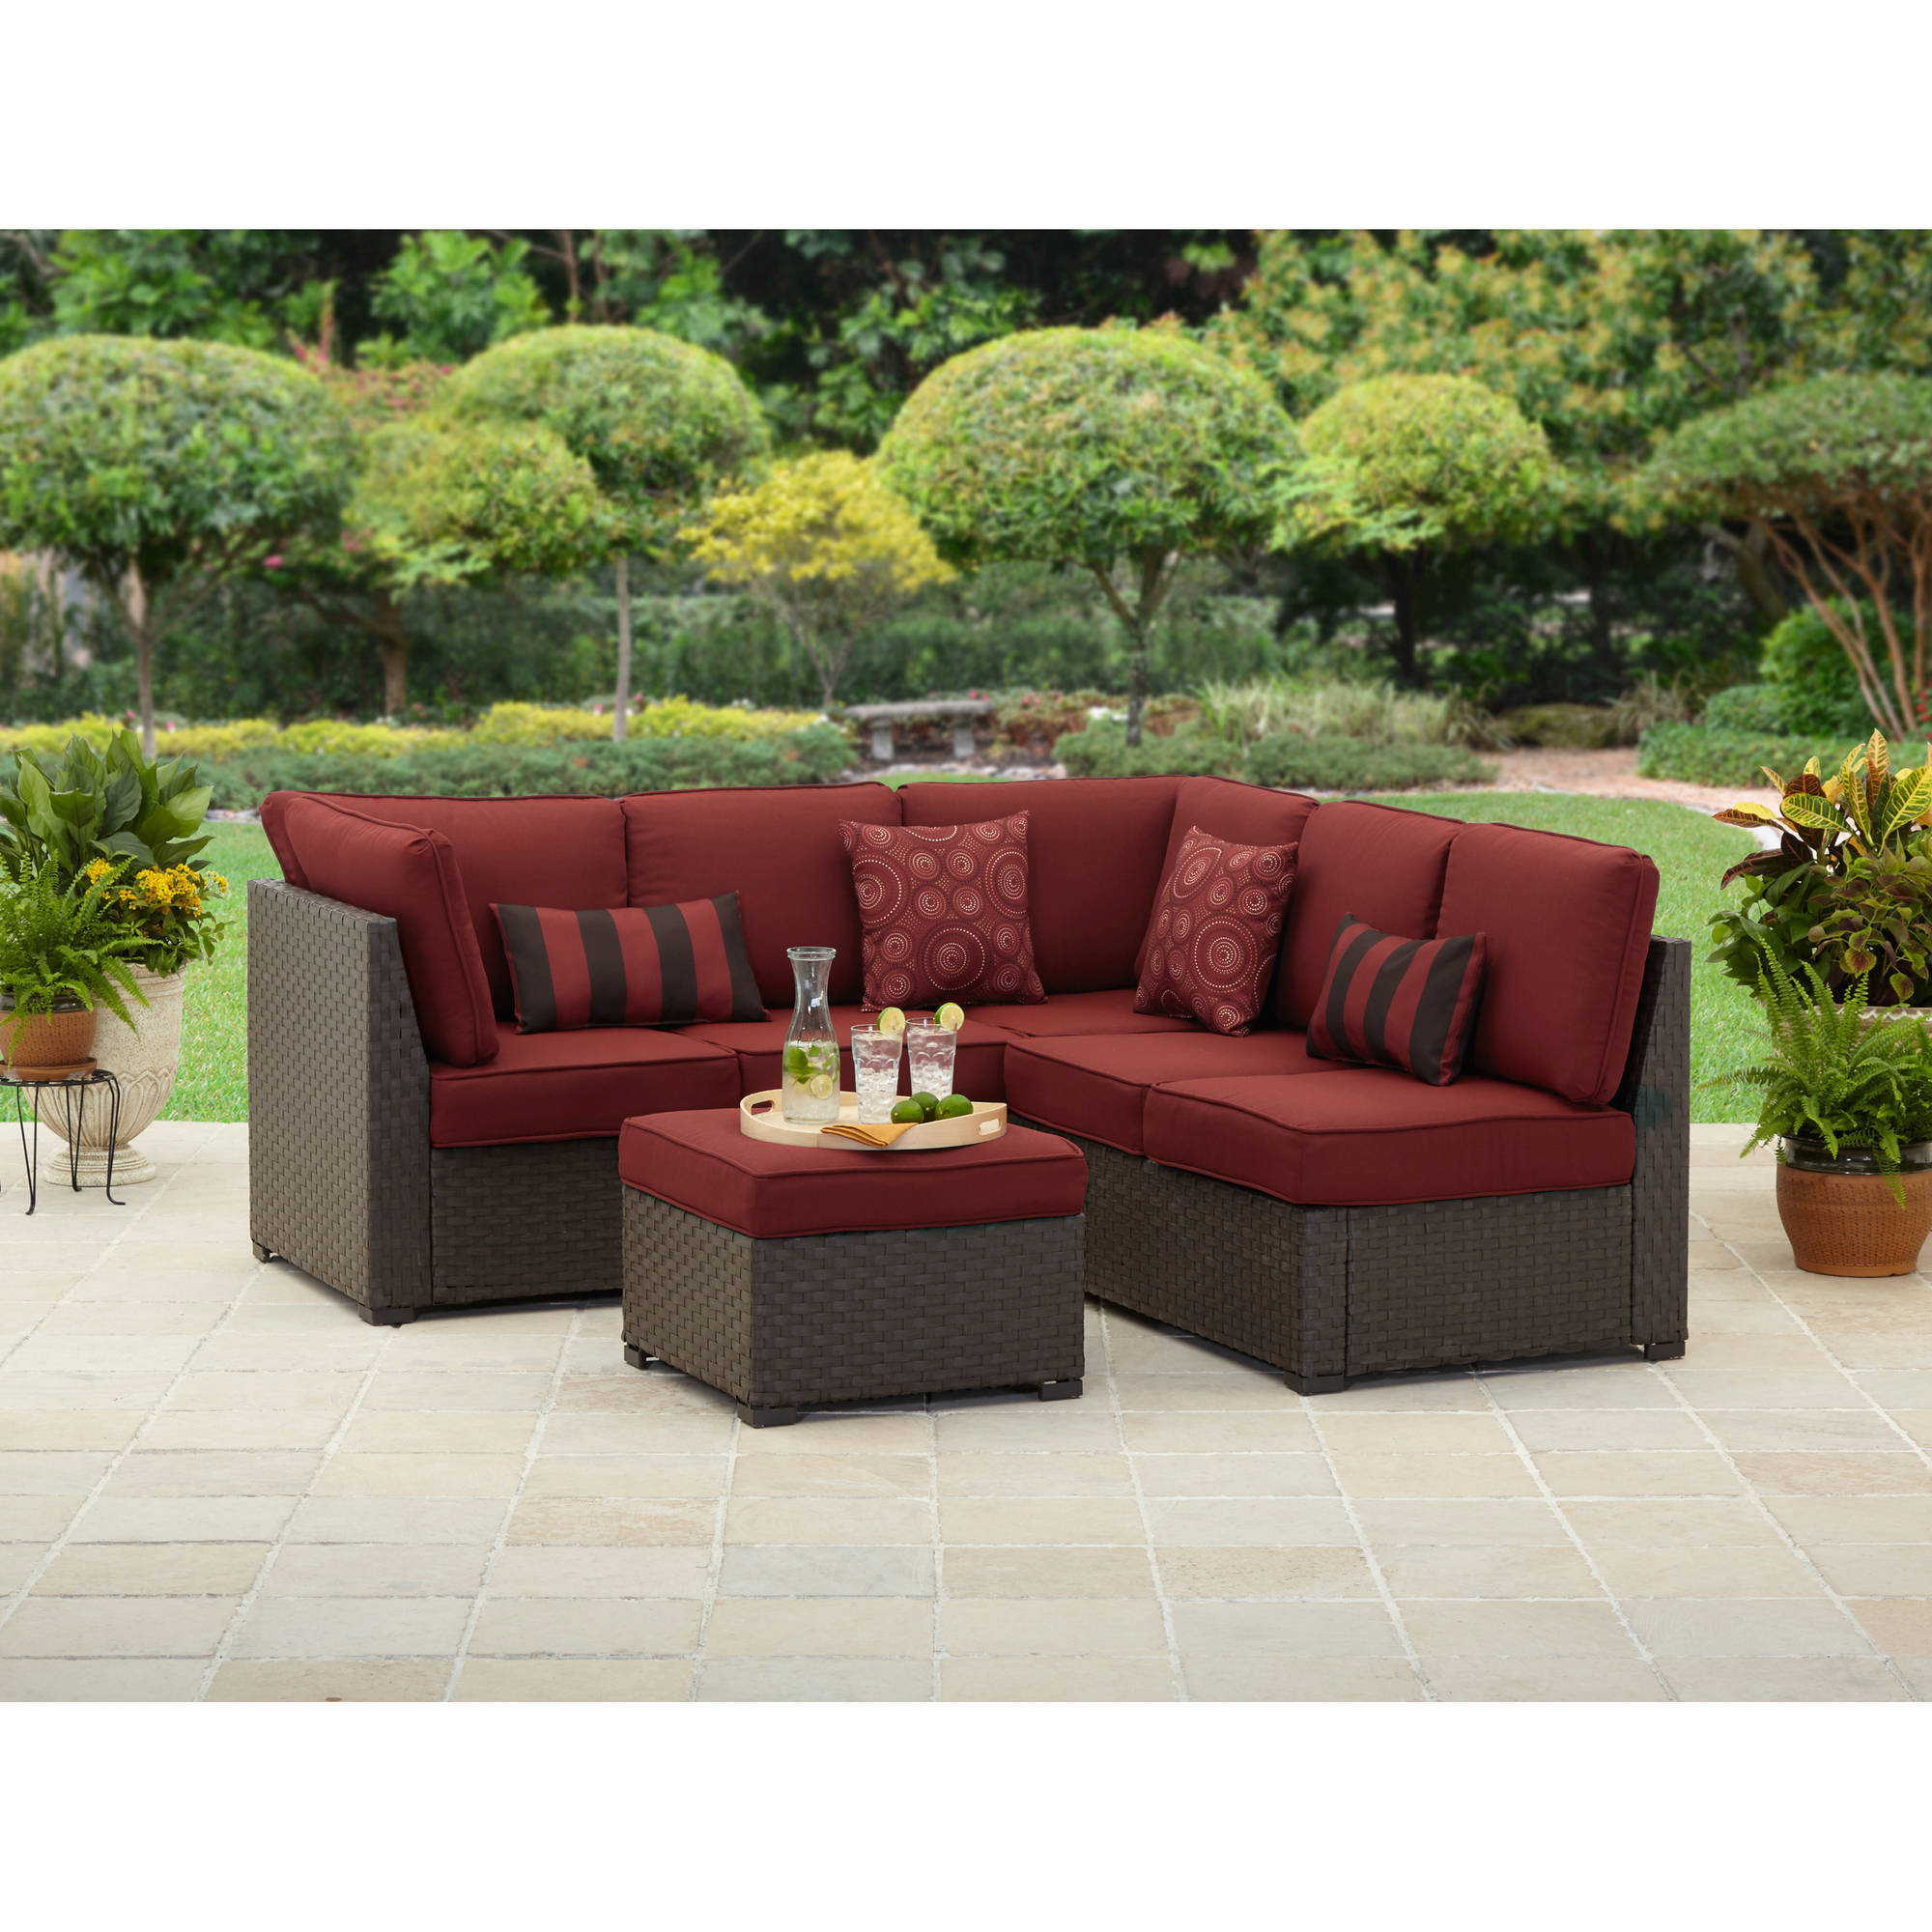 better homes and garden carter hills outdoor conversation set seats 5 walmartcom